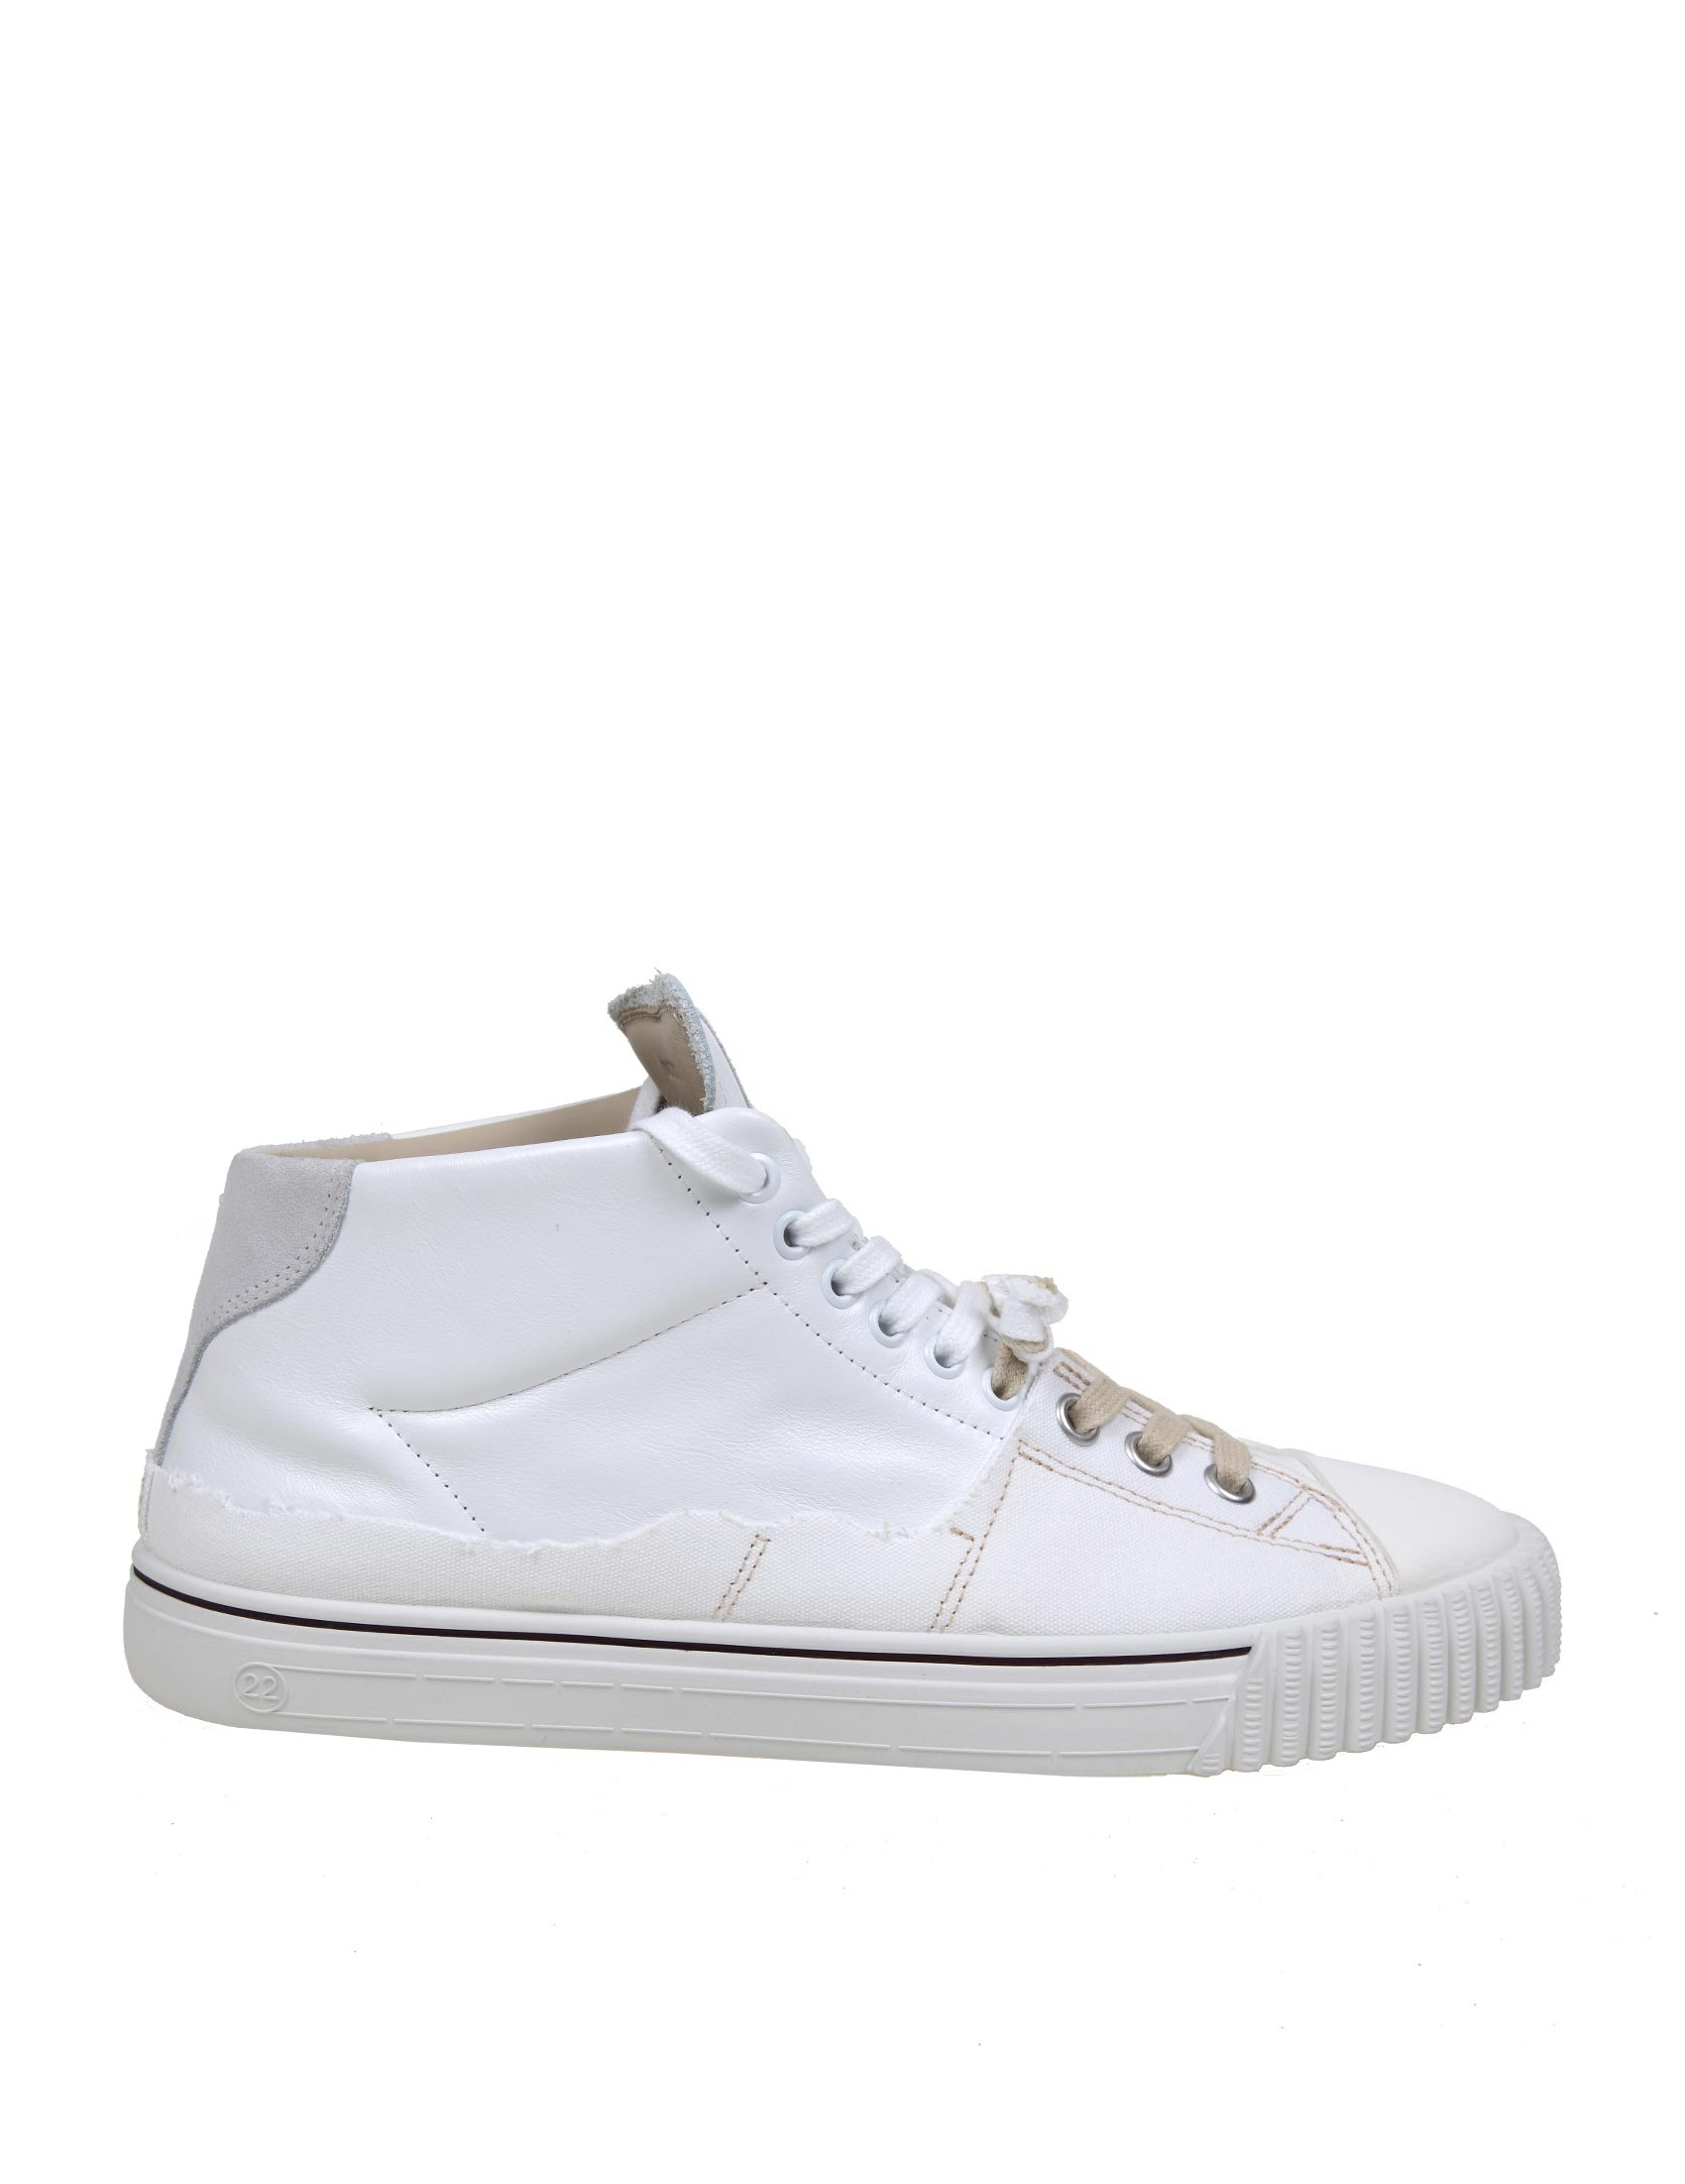 Maison Margiela MAISON MARGIELA EVOLUTION SNEAKERS IN LEATHER AND CANVAS